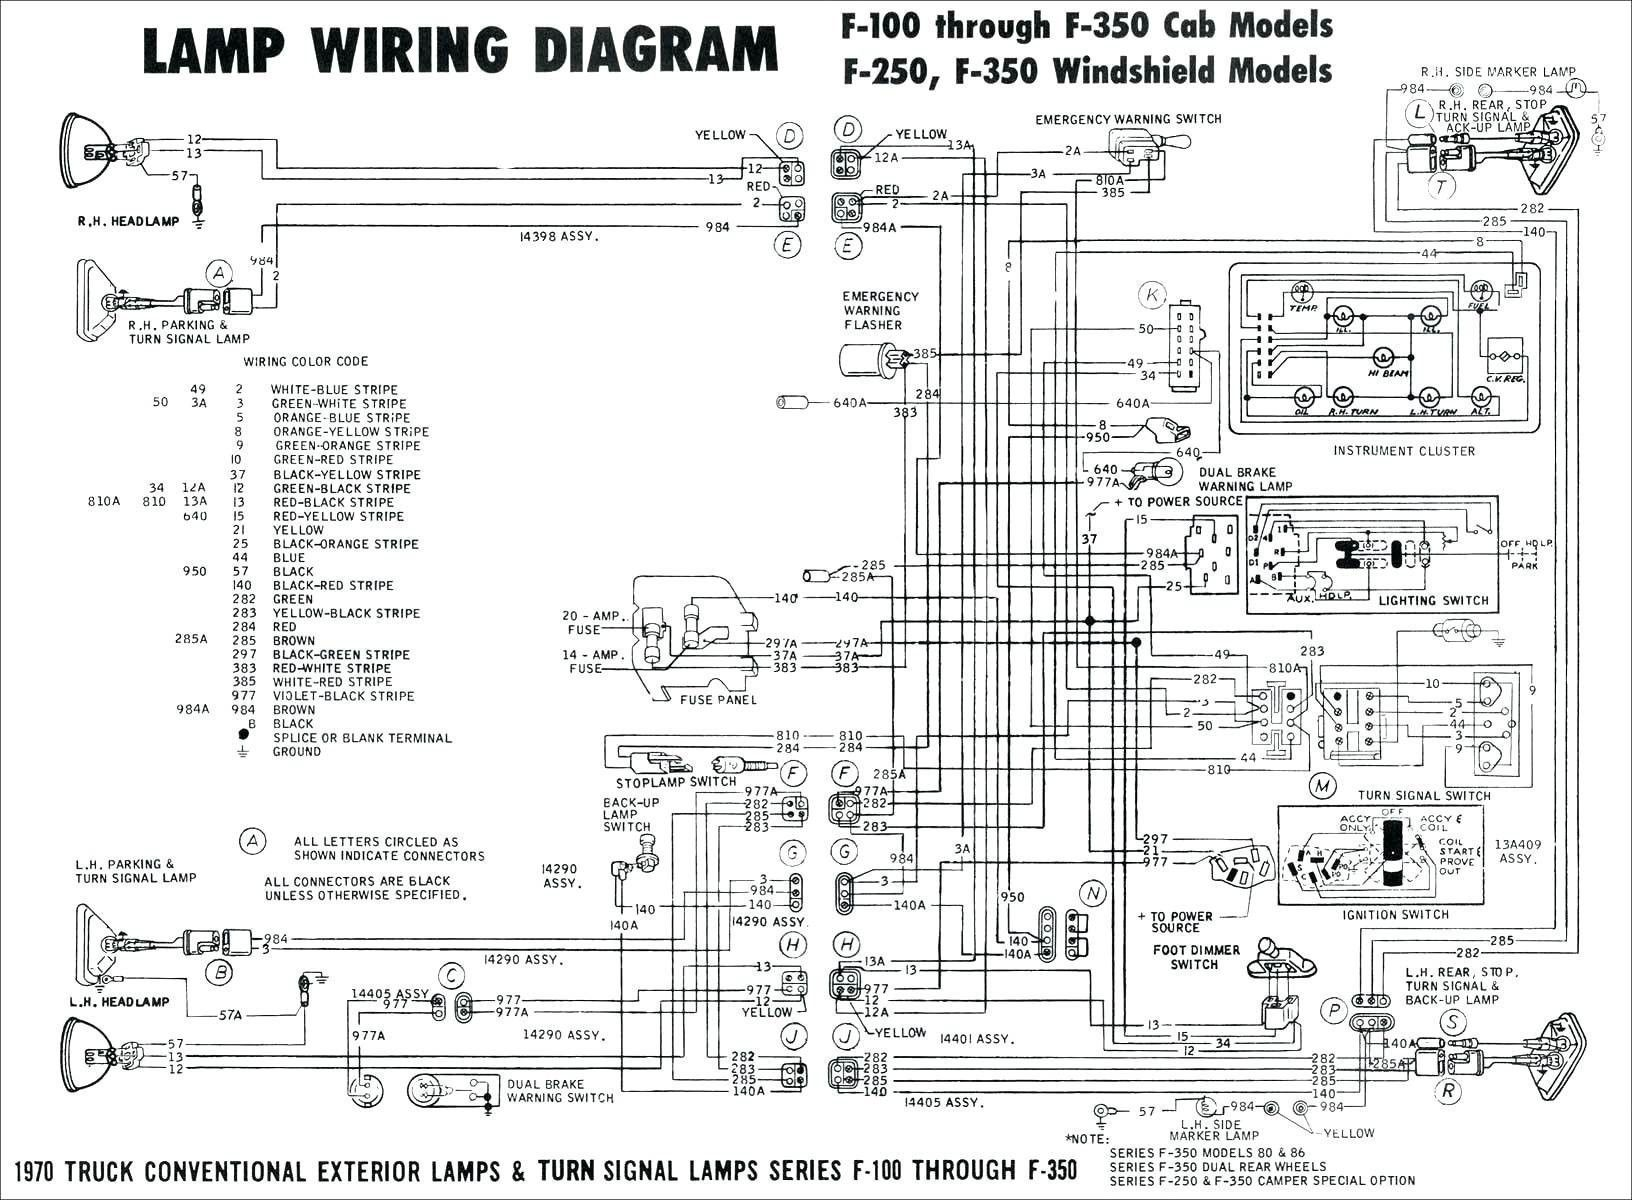 Engine Diagram Wiringg Net Subaru Subaru Wrx Engine Subaru Forester